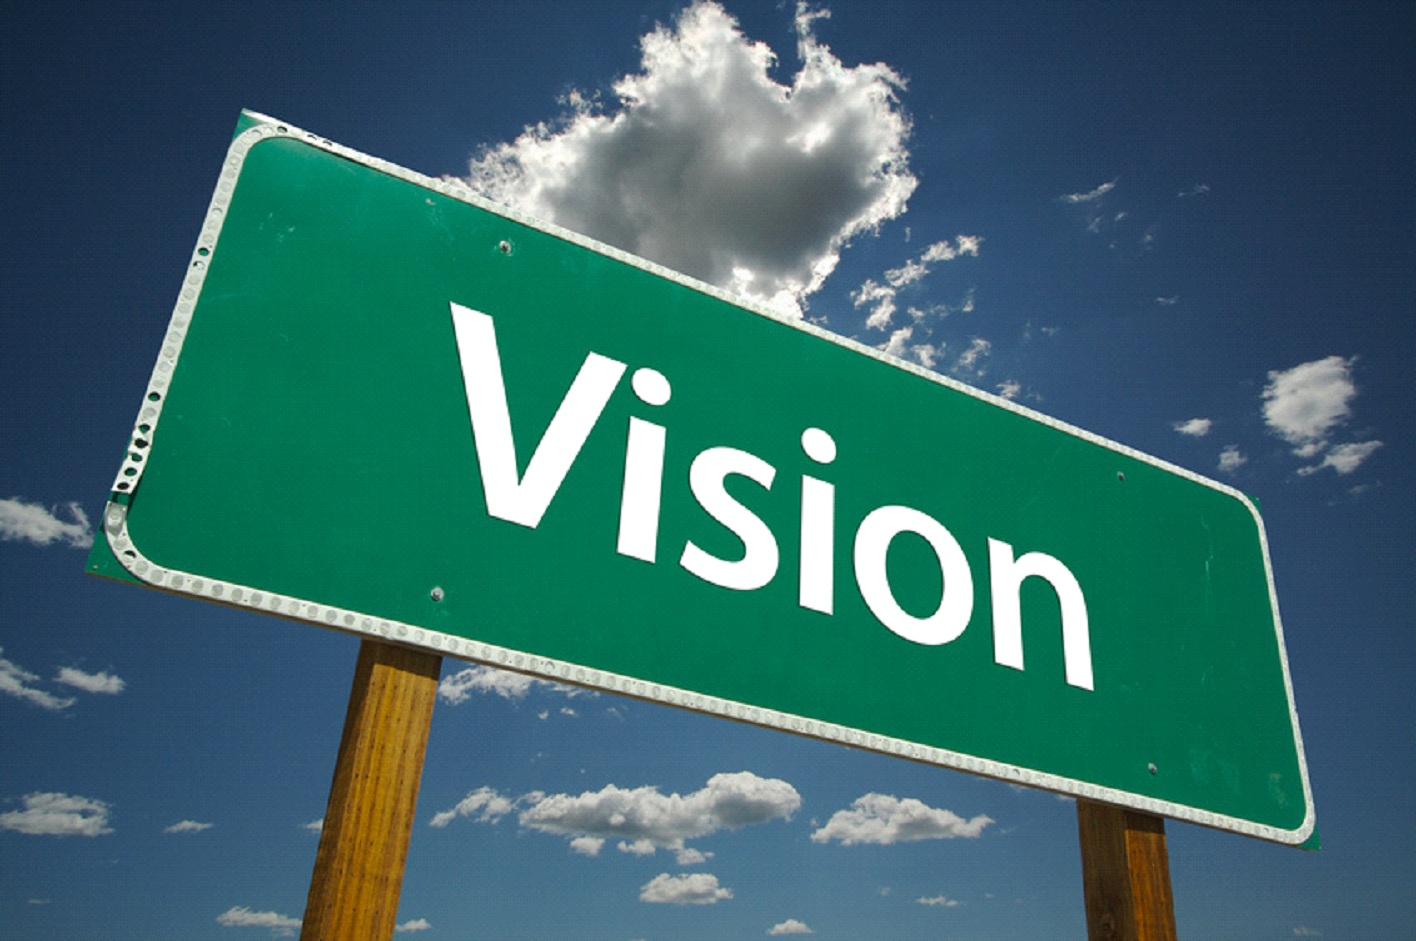 Author J.R> Atkins speaks on Vision